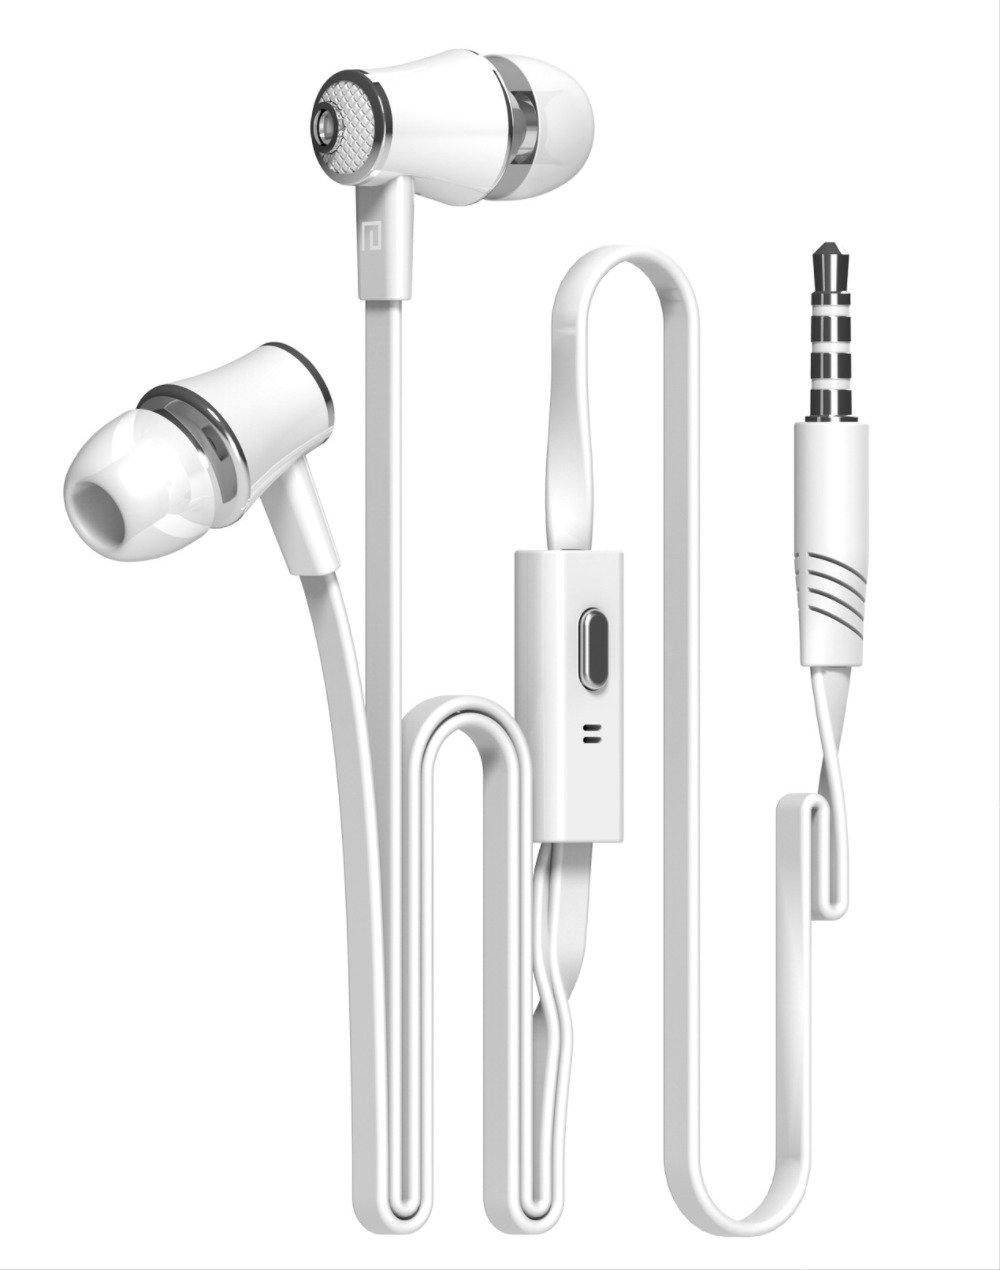 RedSonics SE1 Earphone Super Bass Earbuds Stereo Headset For Xiaomi Samsung Music Mobile Phone PC fone de ouvido Gaming[ White ]